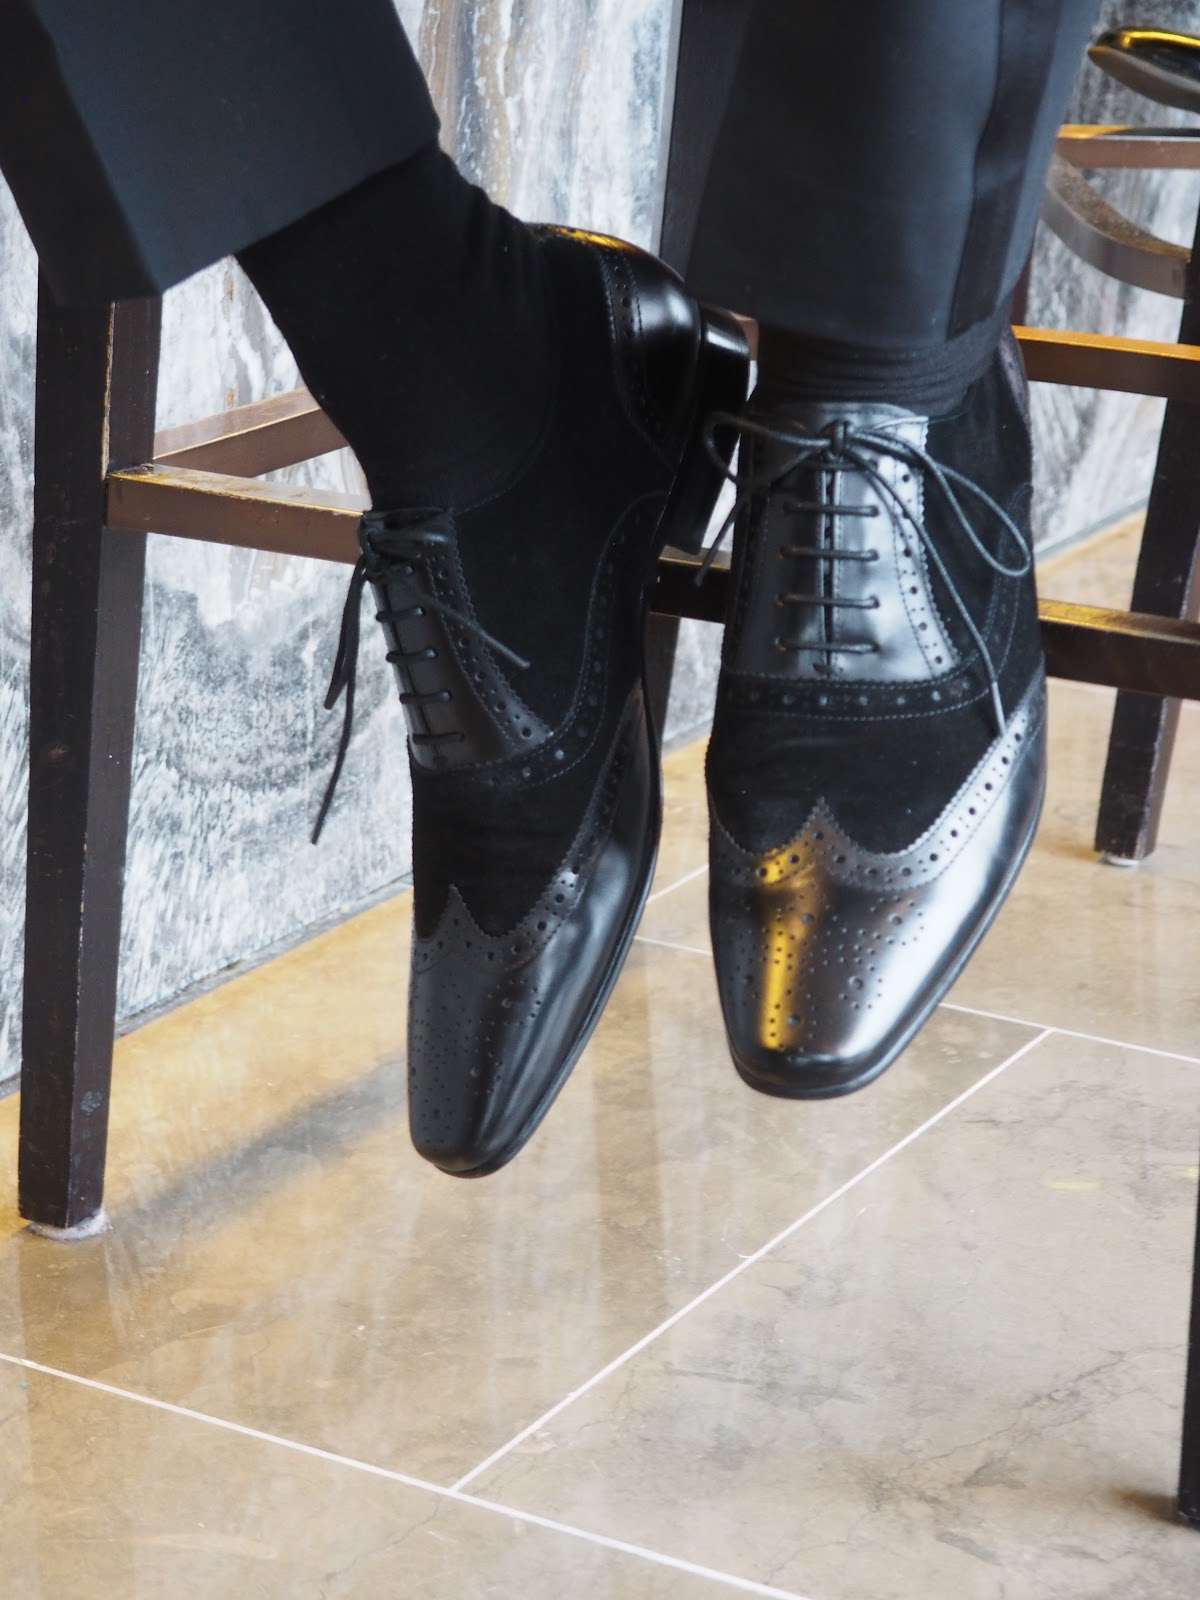 Shoes leaning against a chair with a marble background